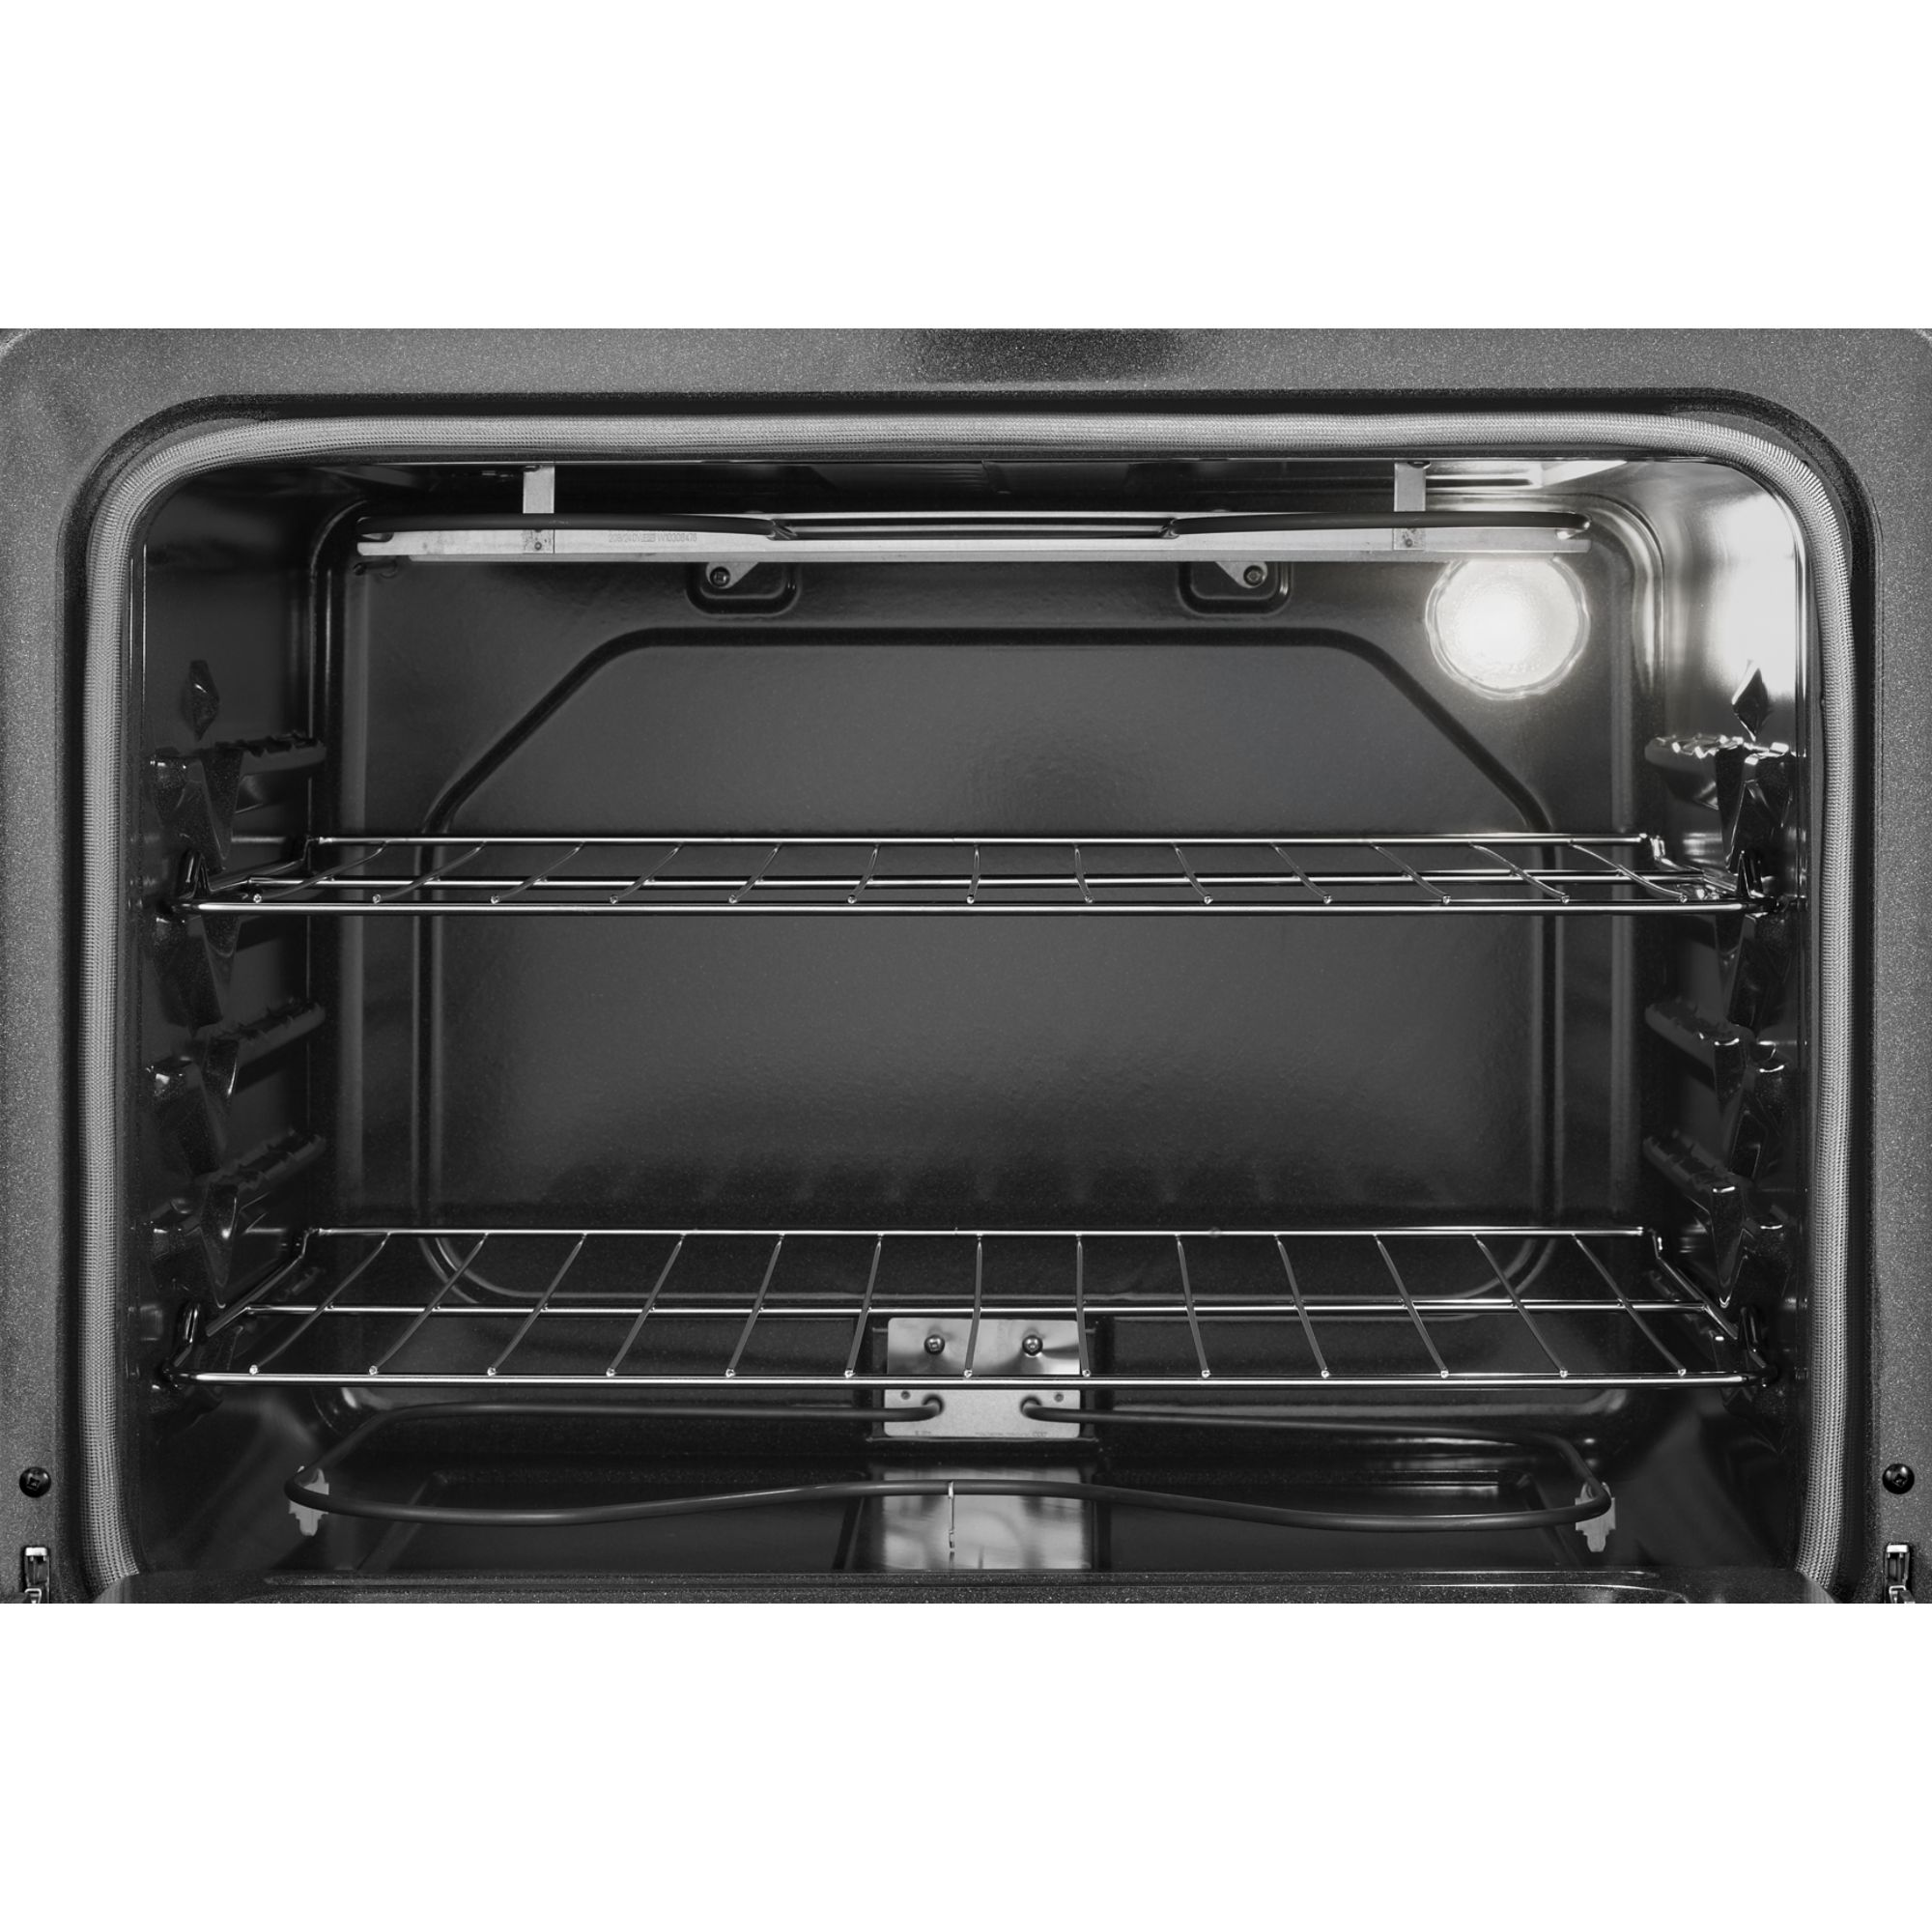 Whirlpool 4.8 cu. ft. Freestanding Electric Range w/ AccuBake® Temp. Management System - Black WFC310S0AB